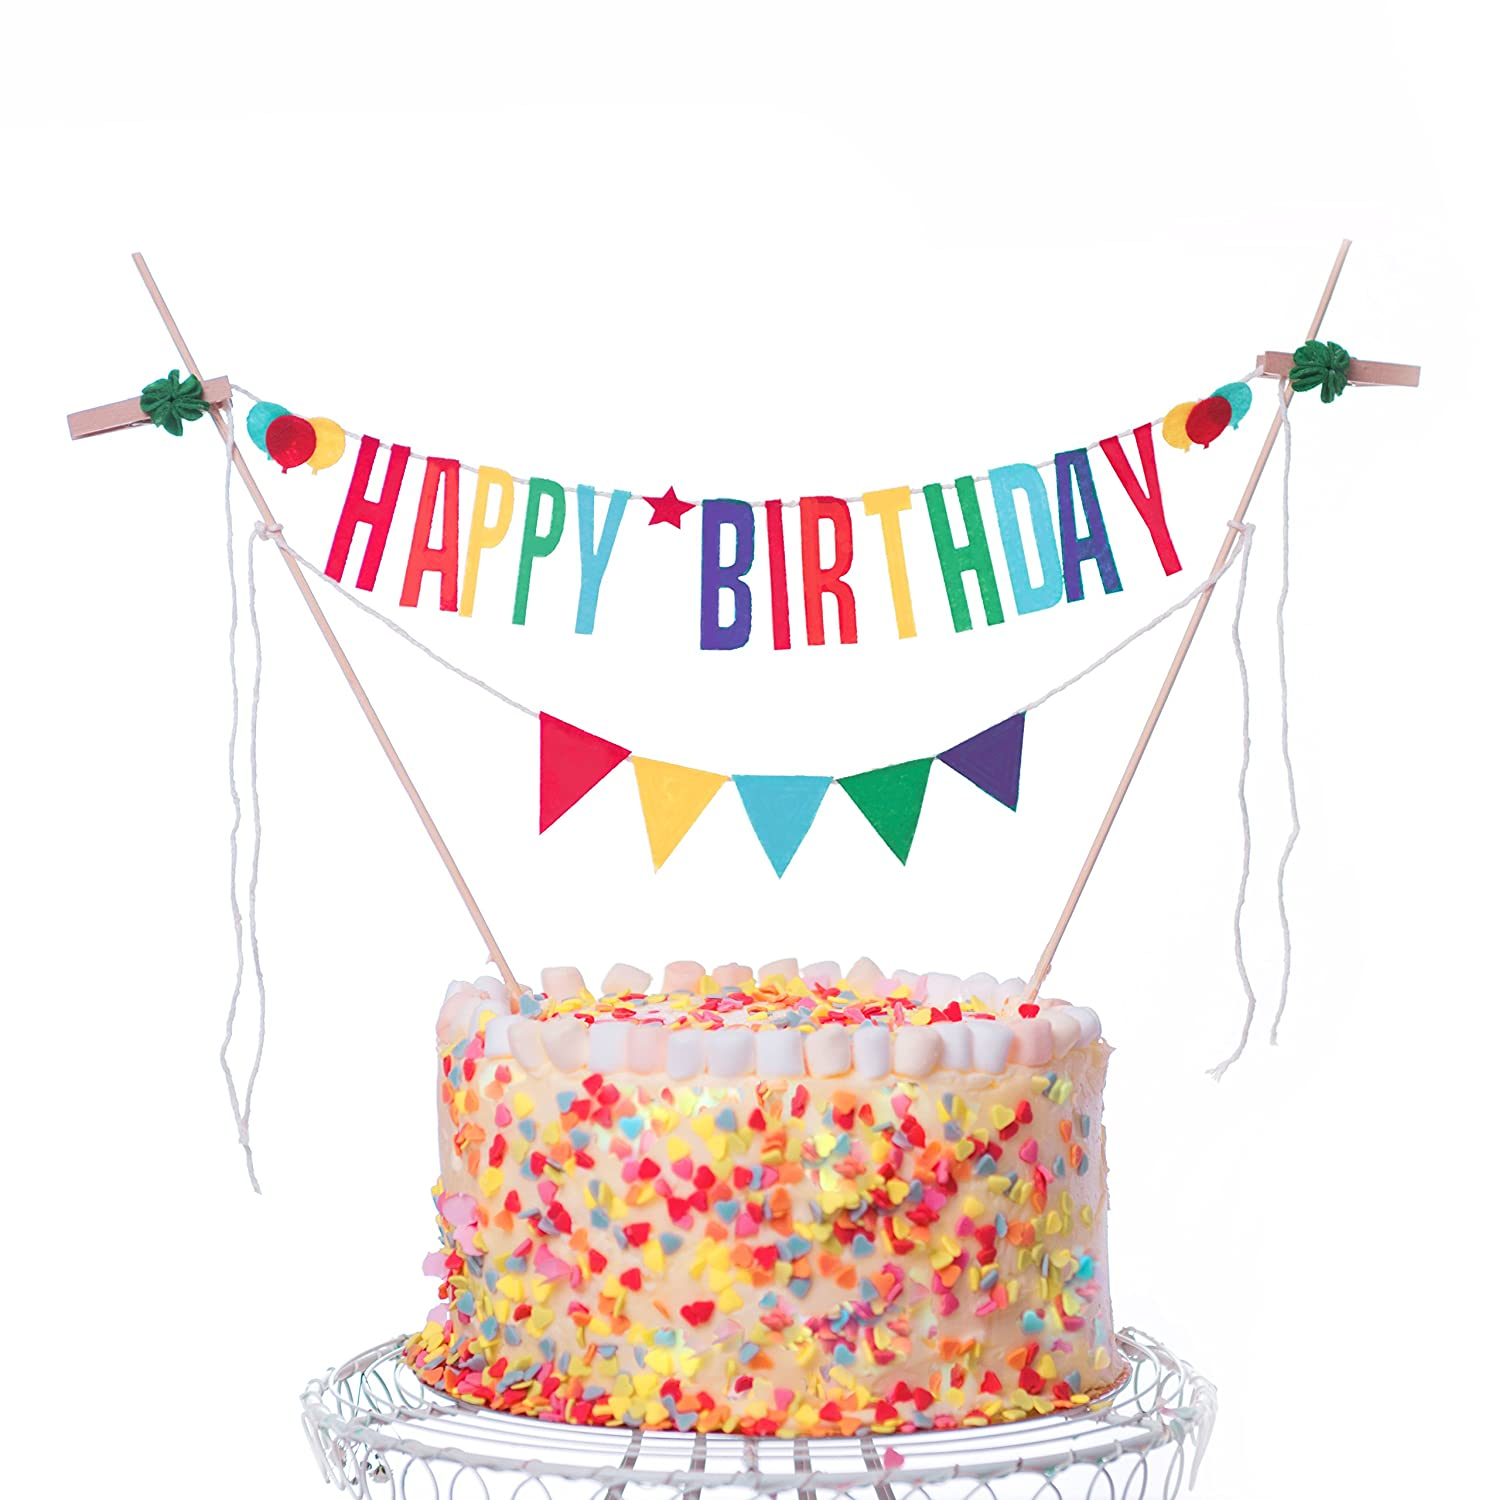 Happy Birthday Cake Topper Banner Colorful Decorating Bunting For Decorations